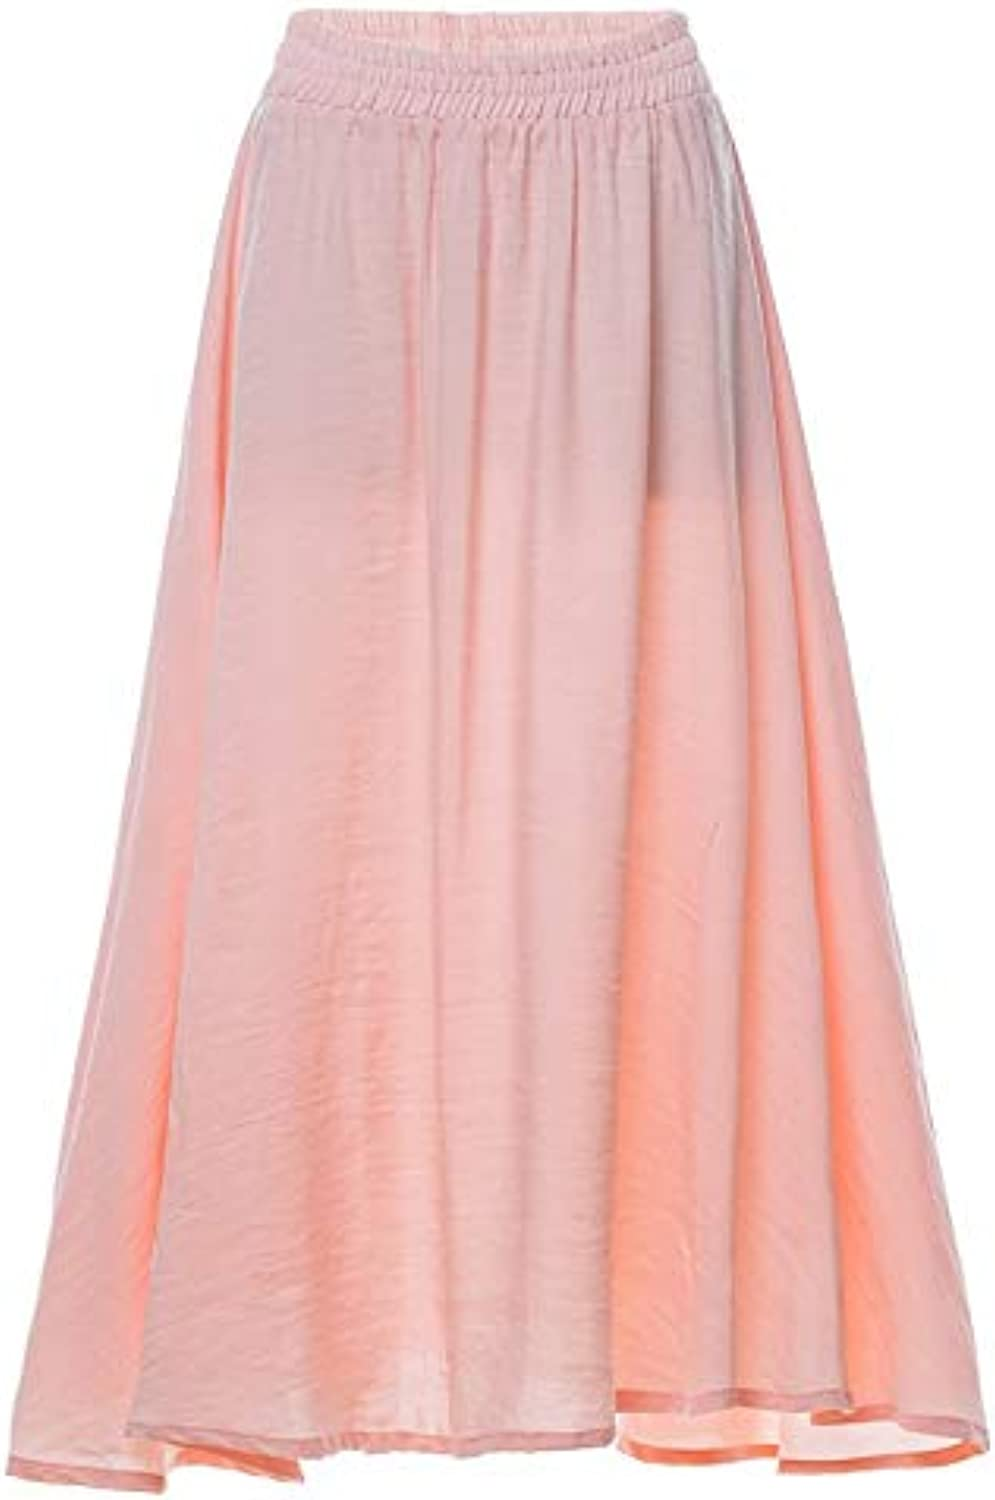 With Large Pleated Skirt and Long Skirt Solid color Casual Elastic Waist Cotton Skirt (color   orange, Size   XL)